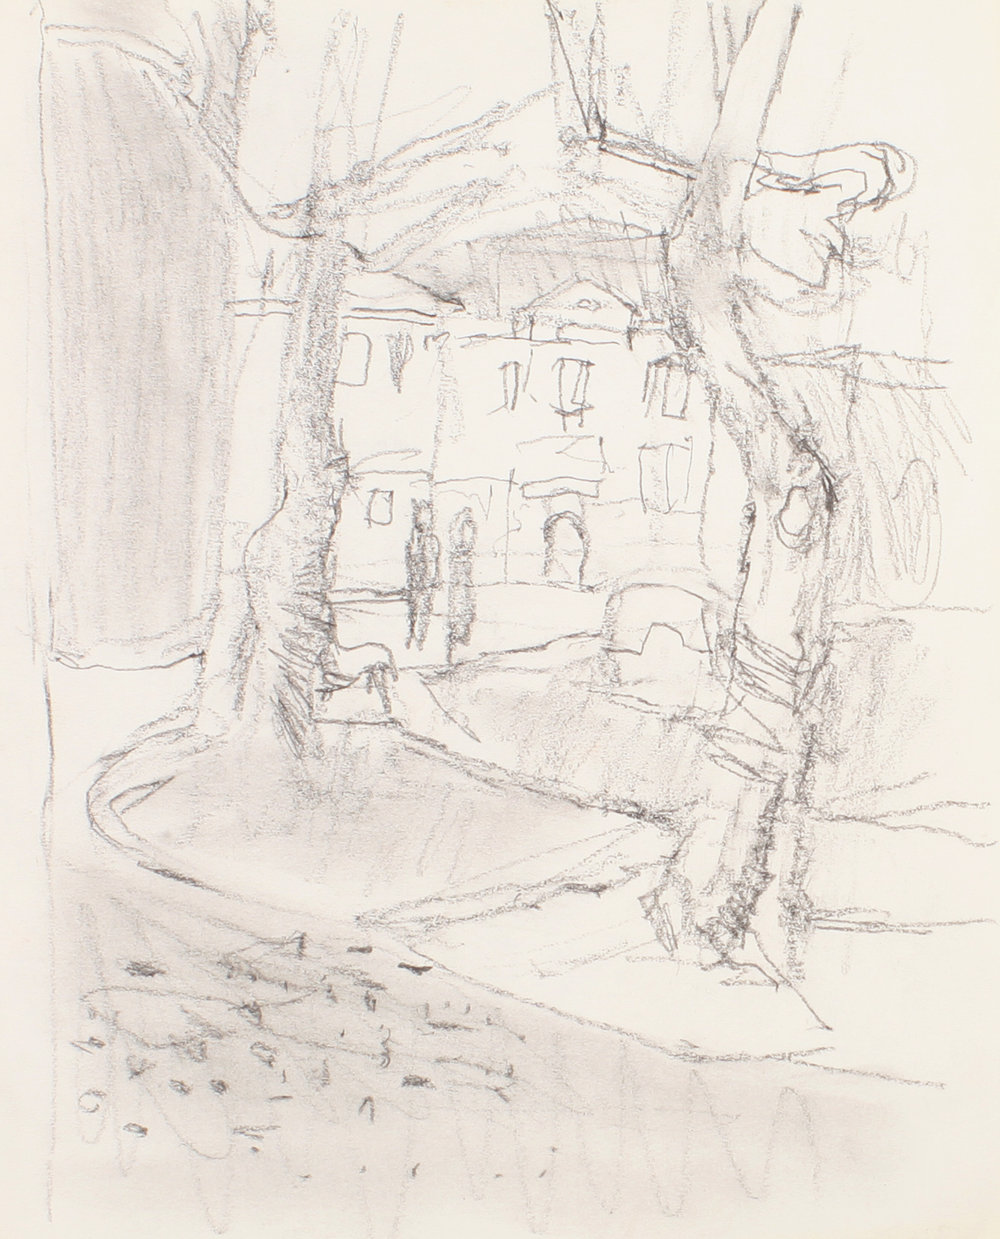 1990s_View_Between_Two_Trees_Venice_pencil_on_paper_10x8in_WPF076.jpg